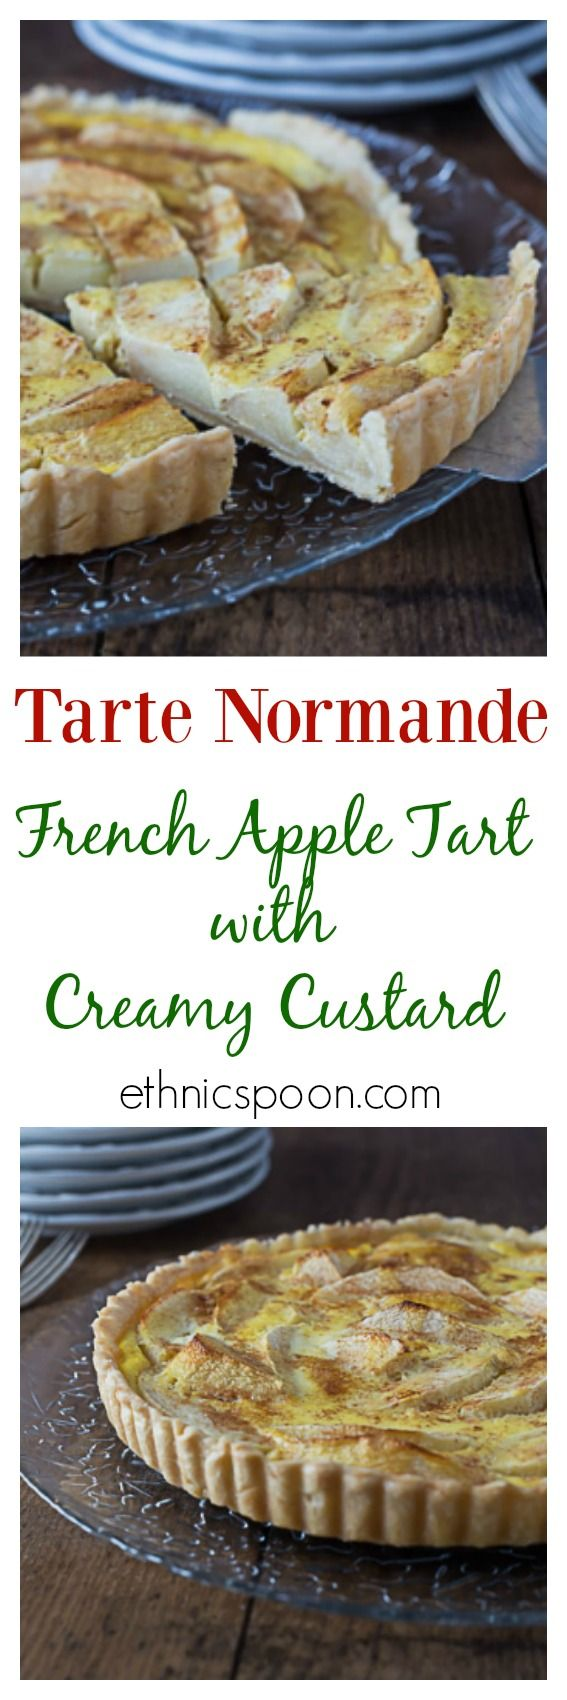 Tarte Normande - French Apple Tart with Custard - Analida's Ethnic Spoon